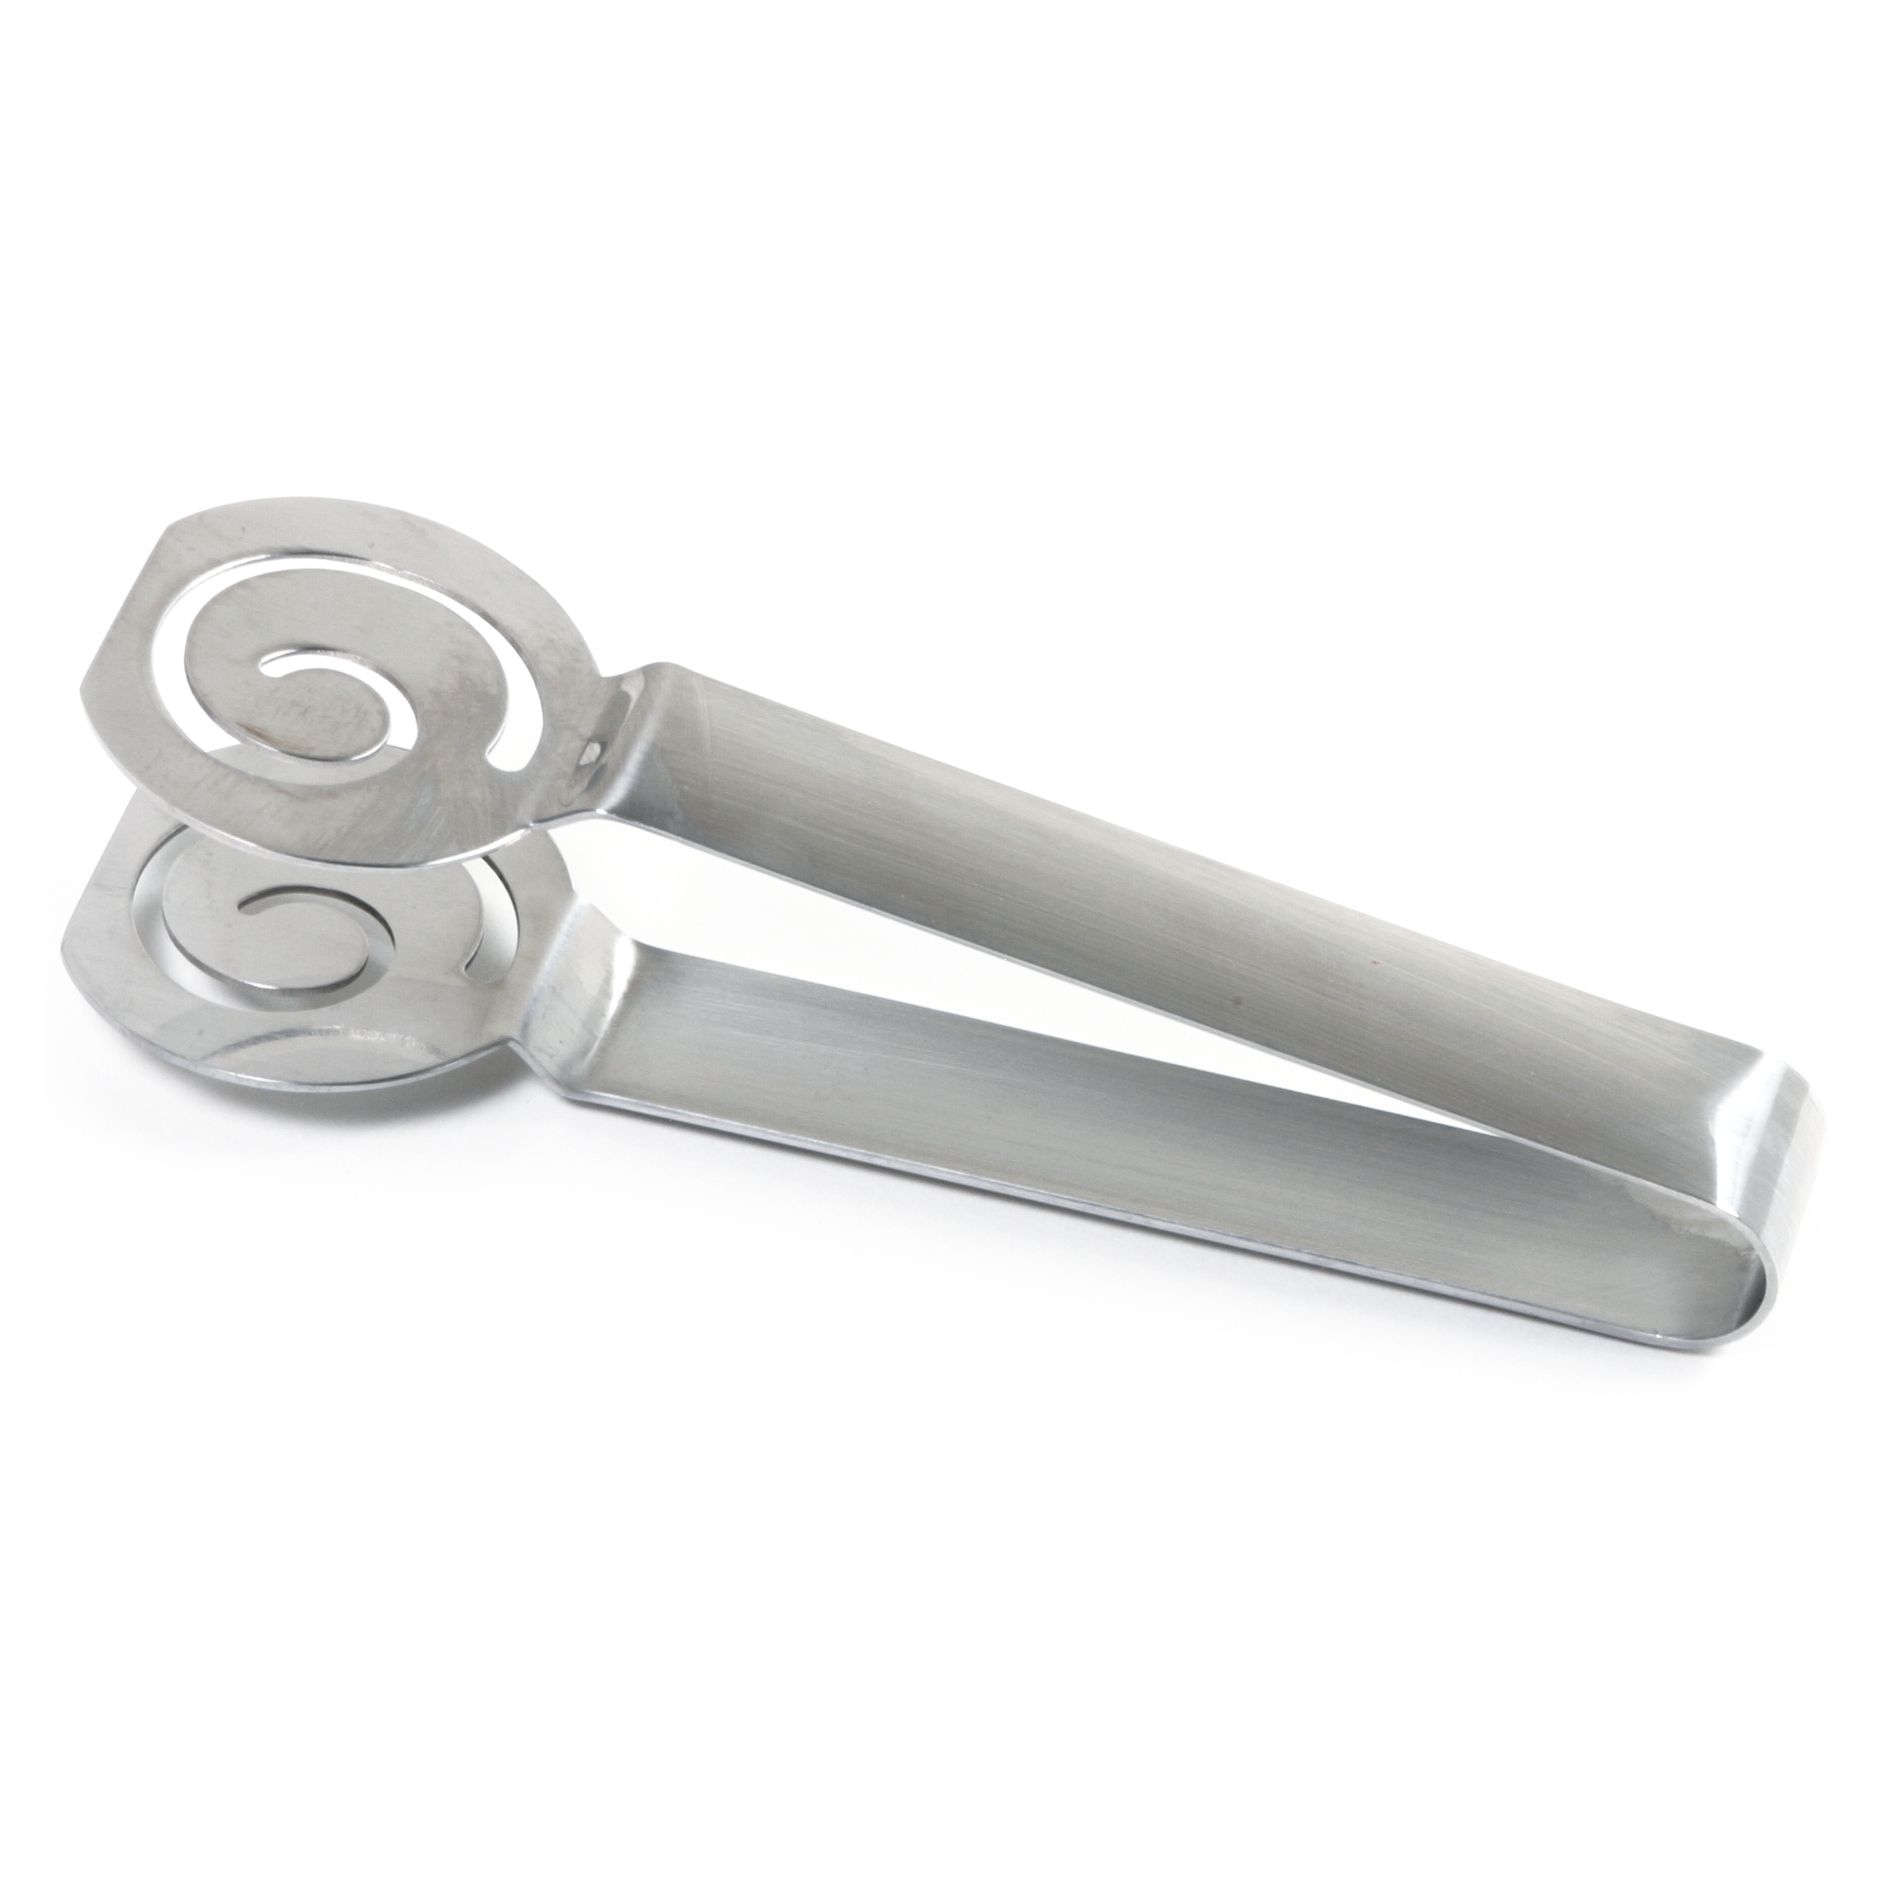 Norpro Stainless Steel Tea Bag Squeezer